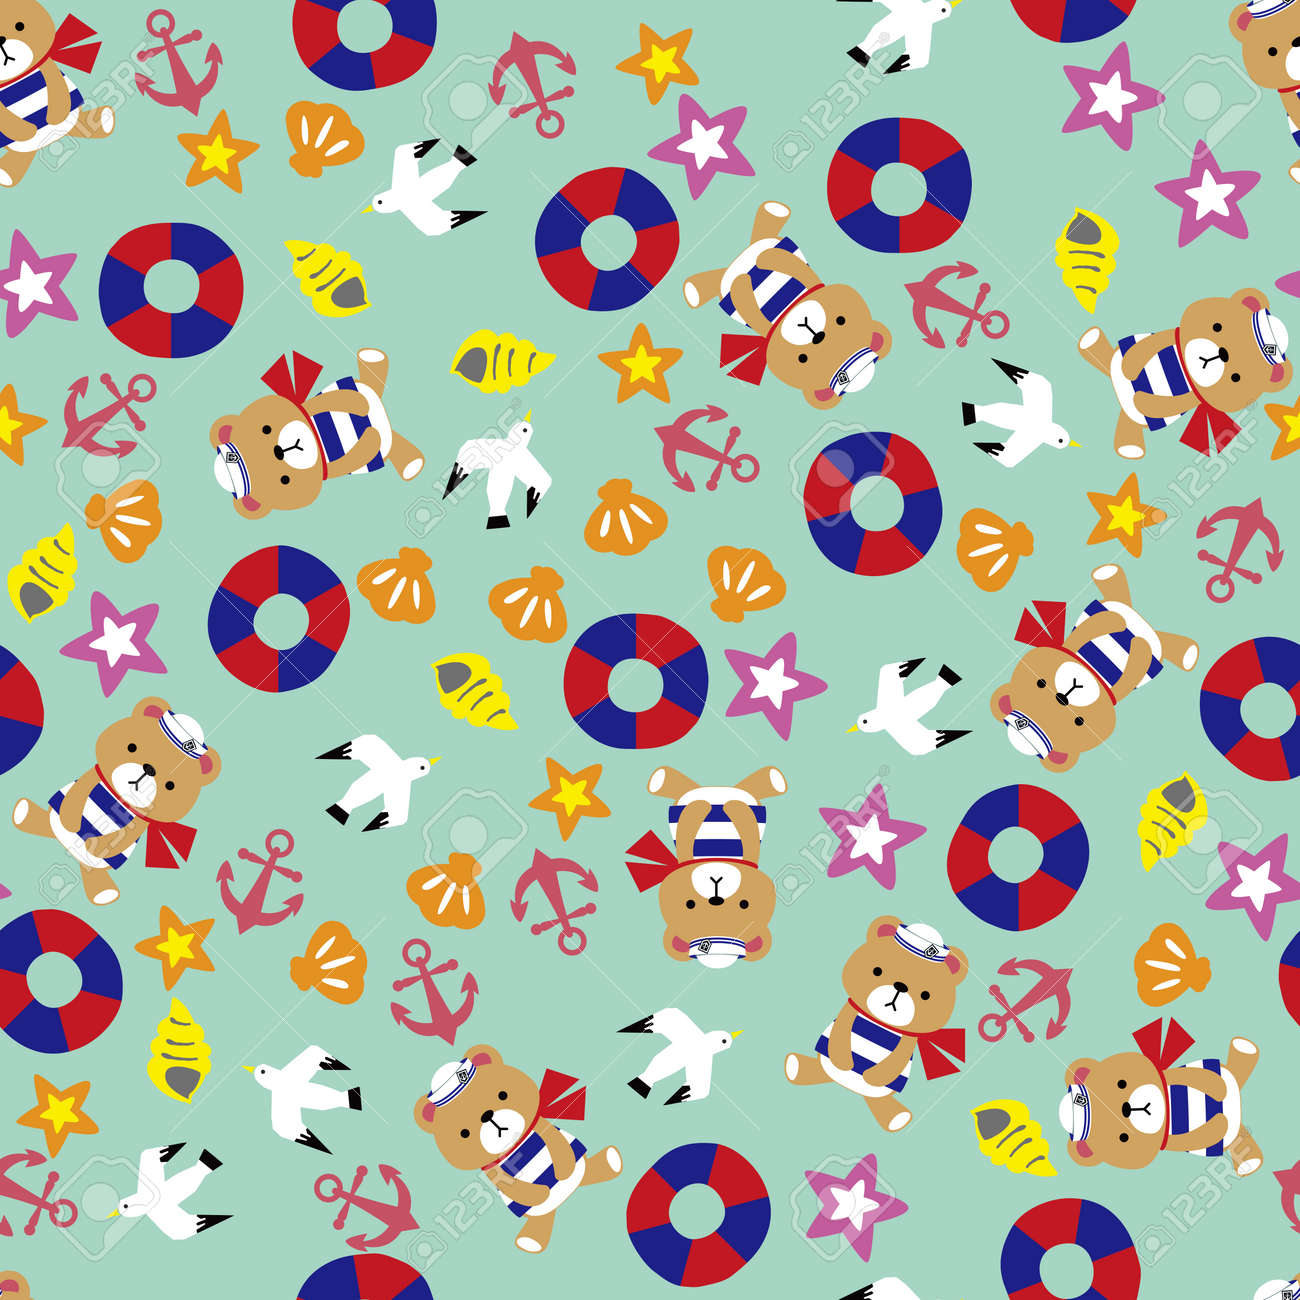 Sea and teddy bear pattern. Seamless pattern. Material for wallpaper and wrapping paper. Textile design. - 169351503